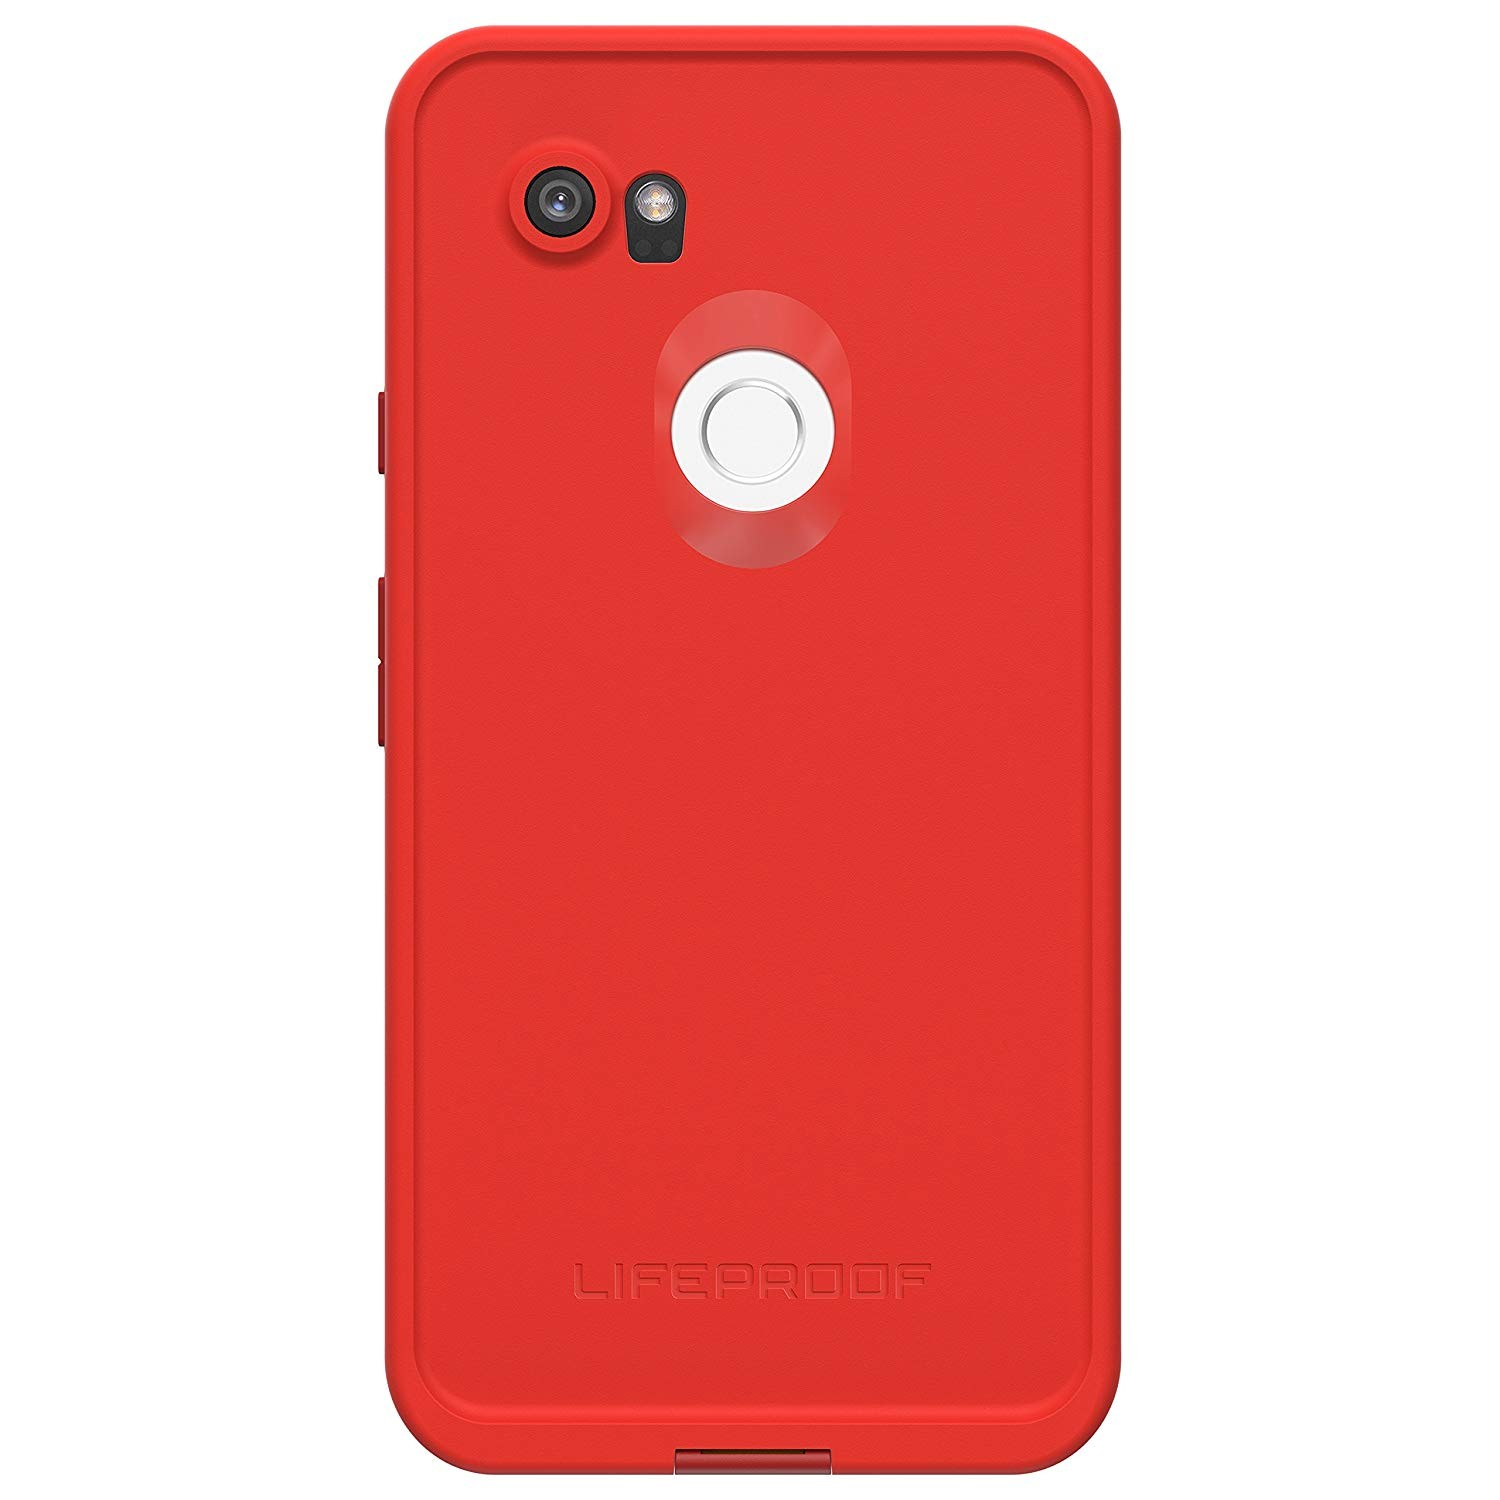 info for 57067 2f4f5 LifeProof fre Waterproof Case for Google Pixel 2 XL - Fire Run (Cherry  Tomato/Sleet/Molten Lava)